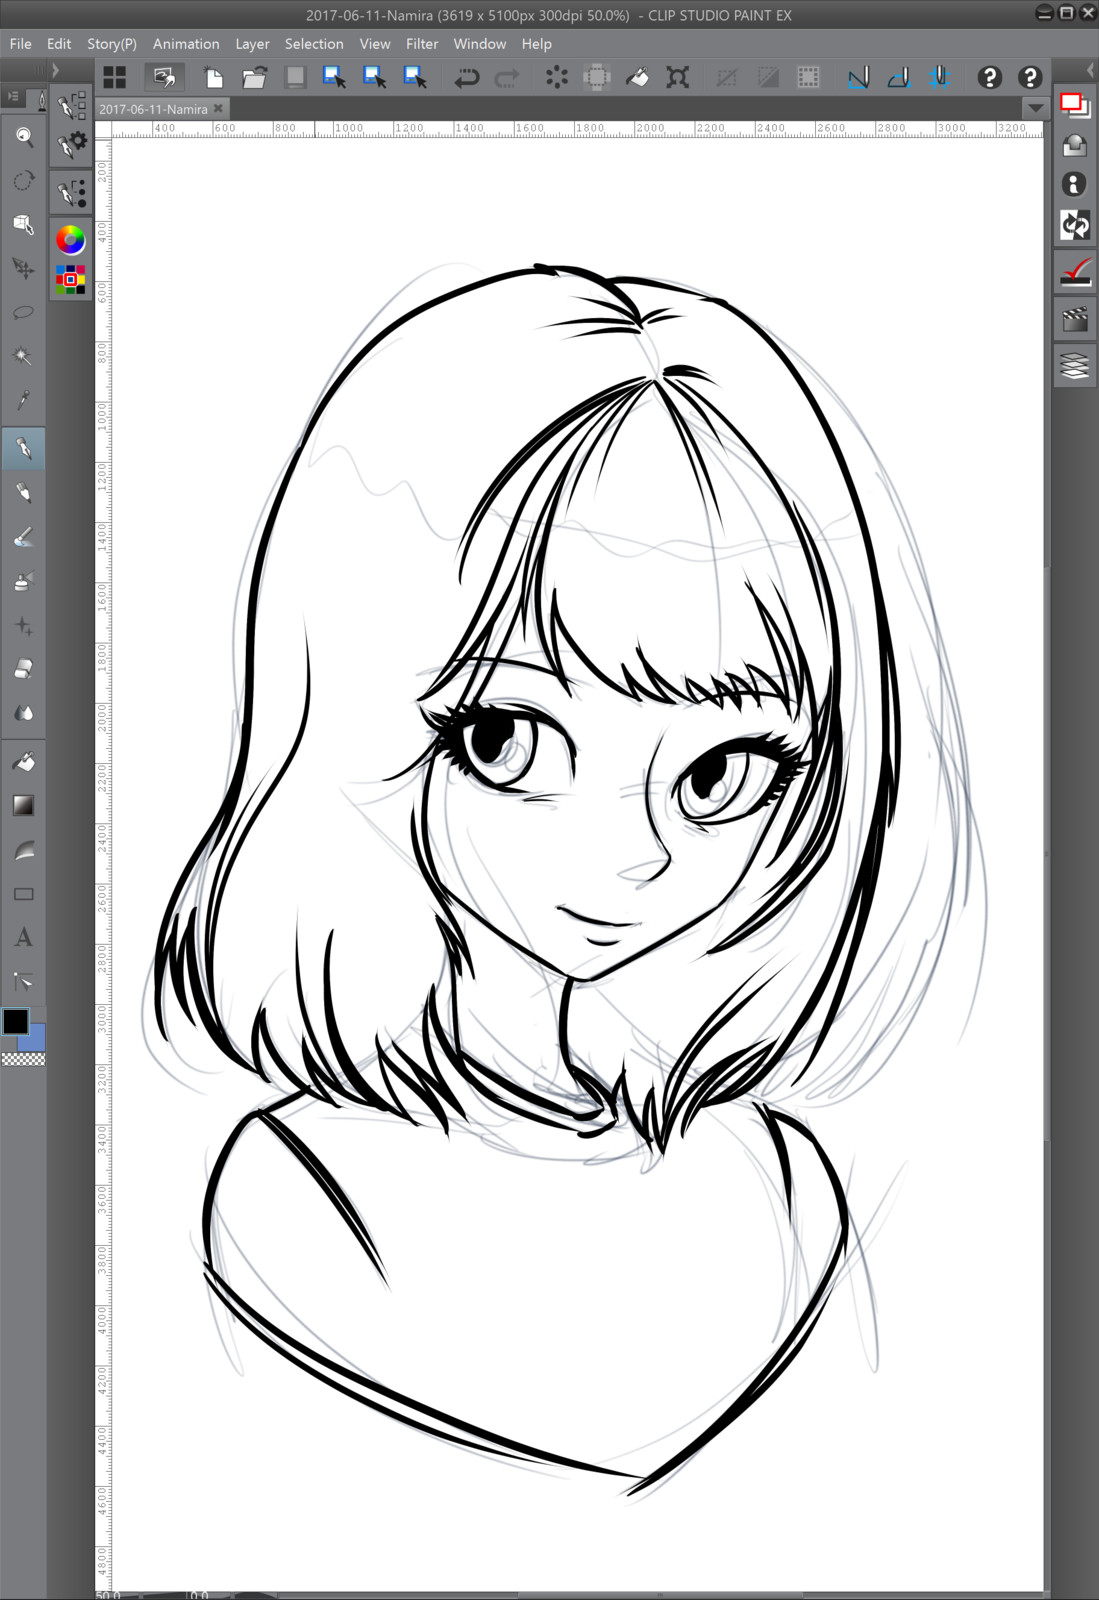 02 - Inking over the rough sketch